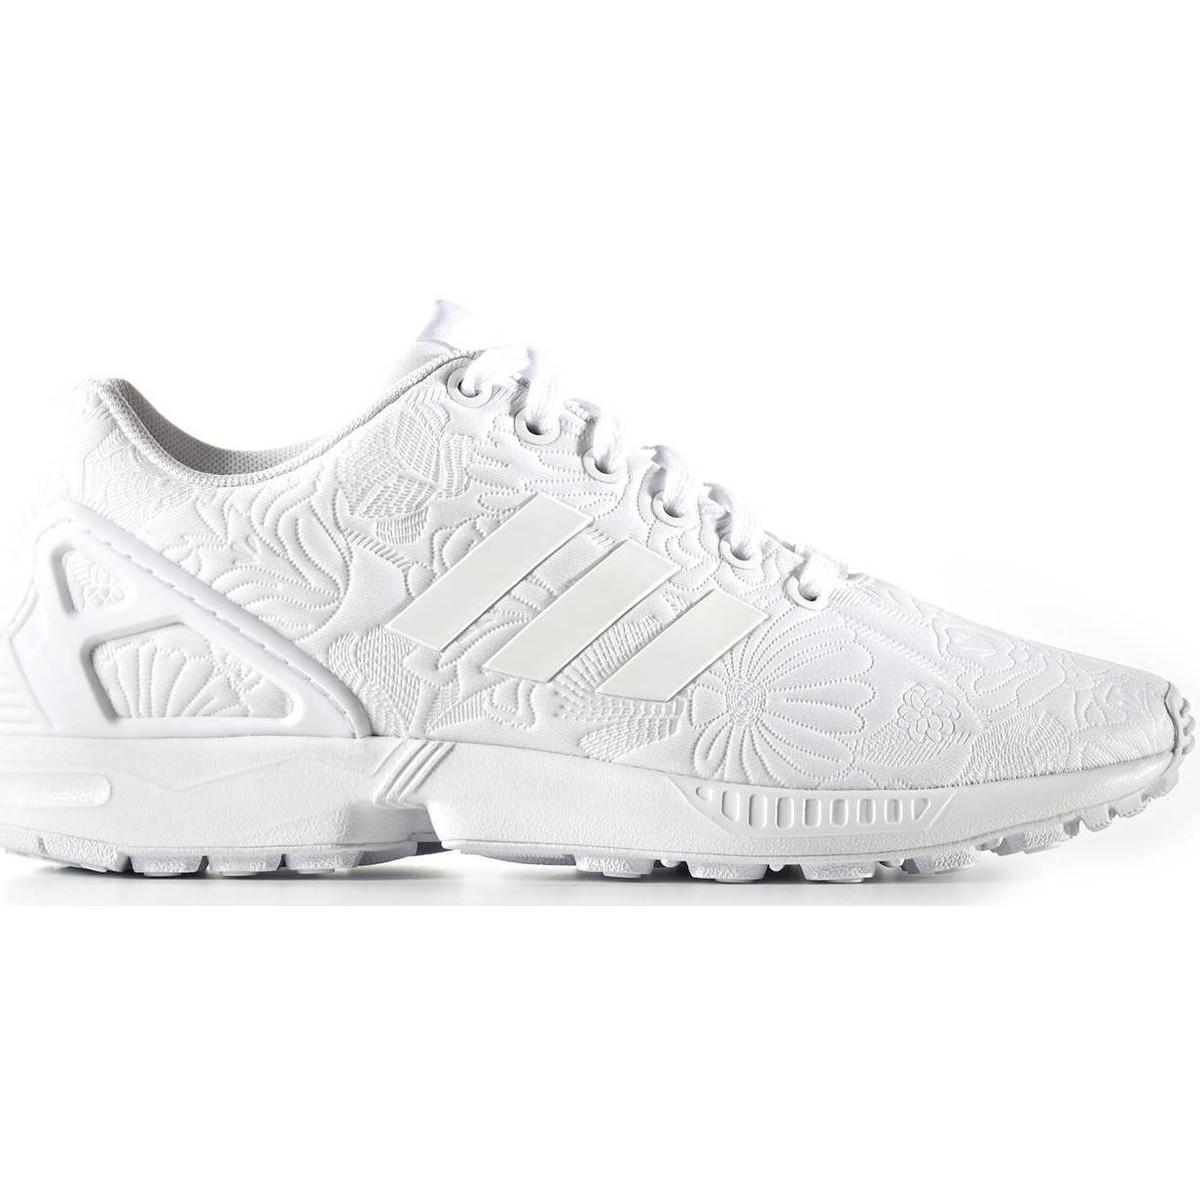 ADIDAS ZX FLUX Women White Black Sneaker Bianco s76590